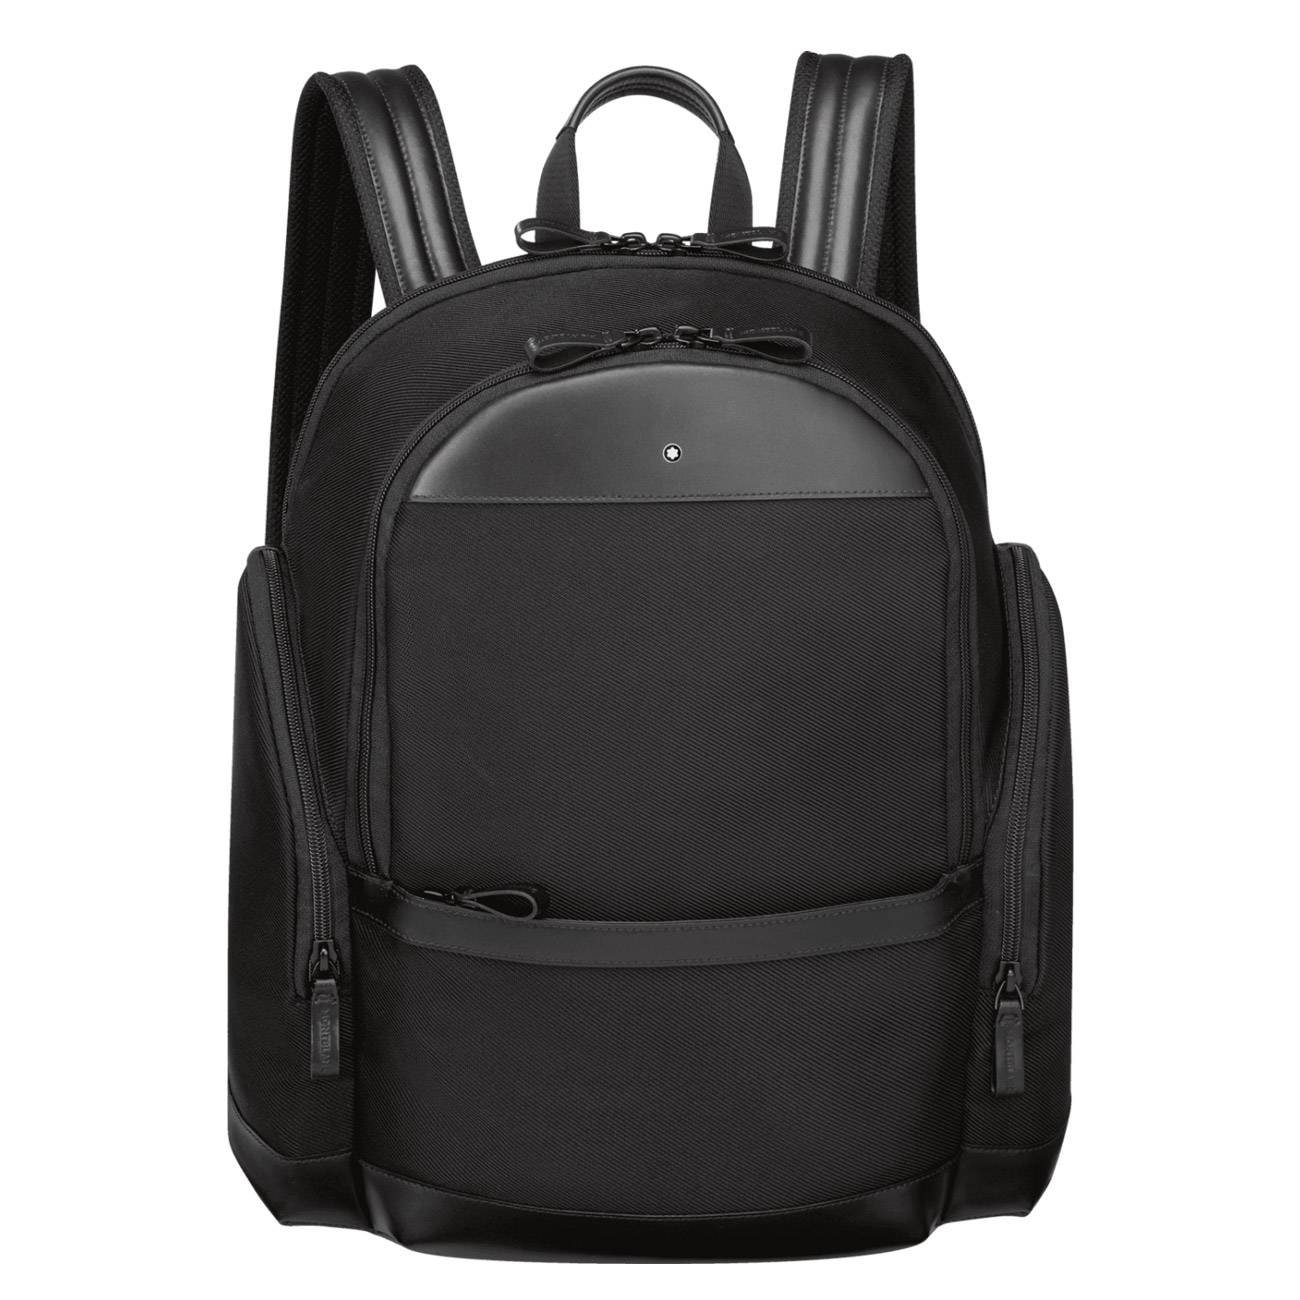 NIGHTFLIGHT BACKPACK